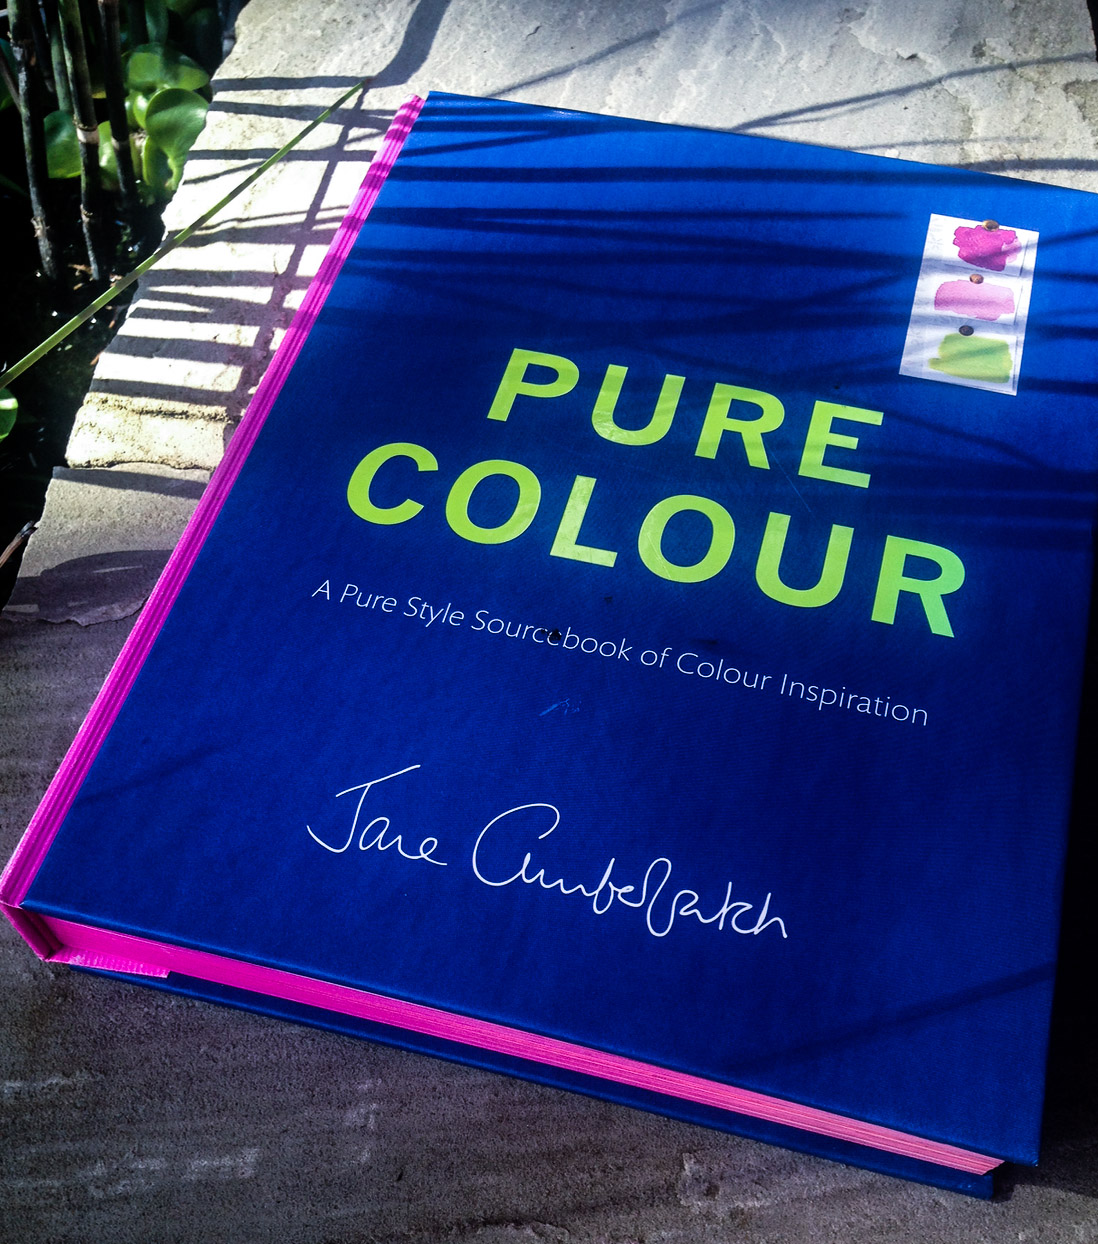 Colour book edges - Jane Cumberbatch Is A Blogger A Designer Author And An Interiors Expert Who Has Been Called The Queen Of Simple But This Book Is A Wonderful Cacophony Of